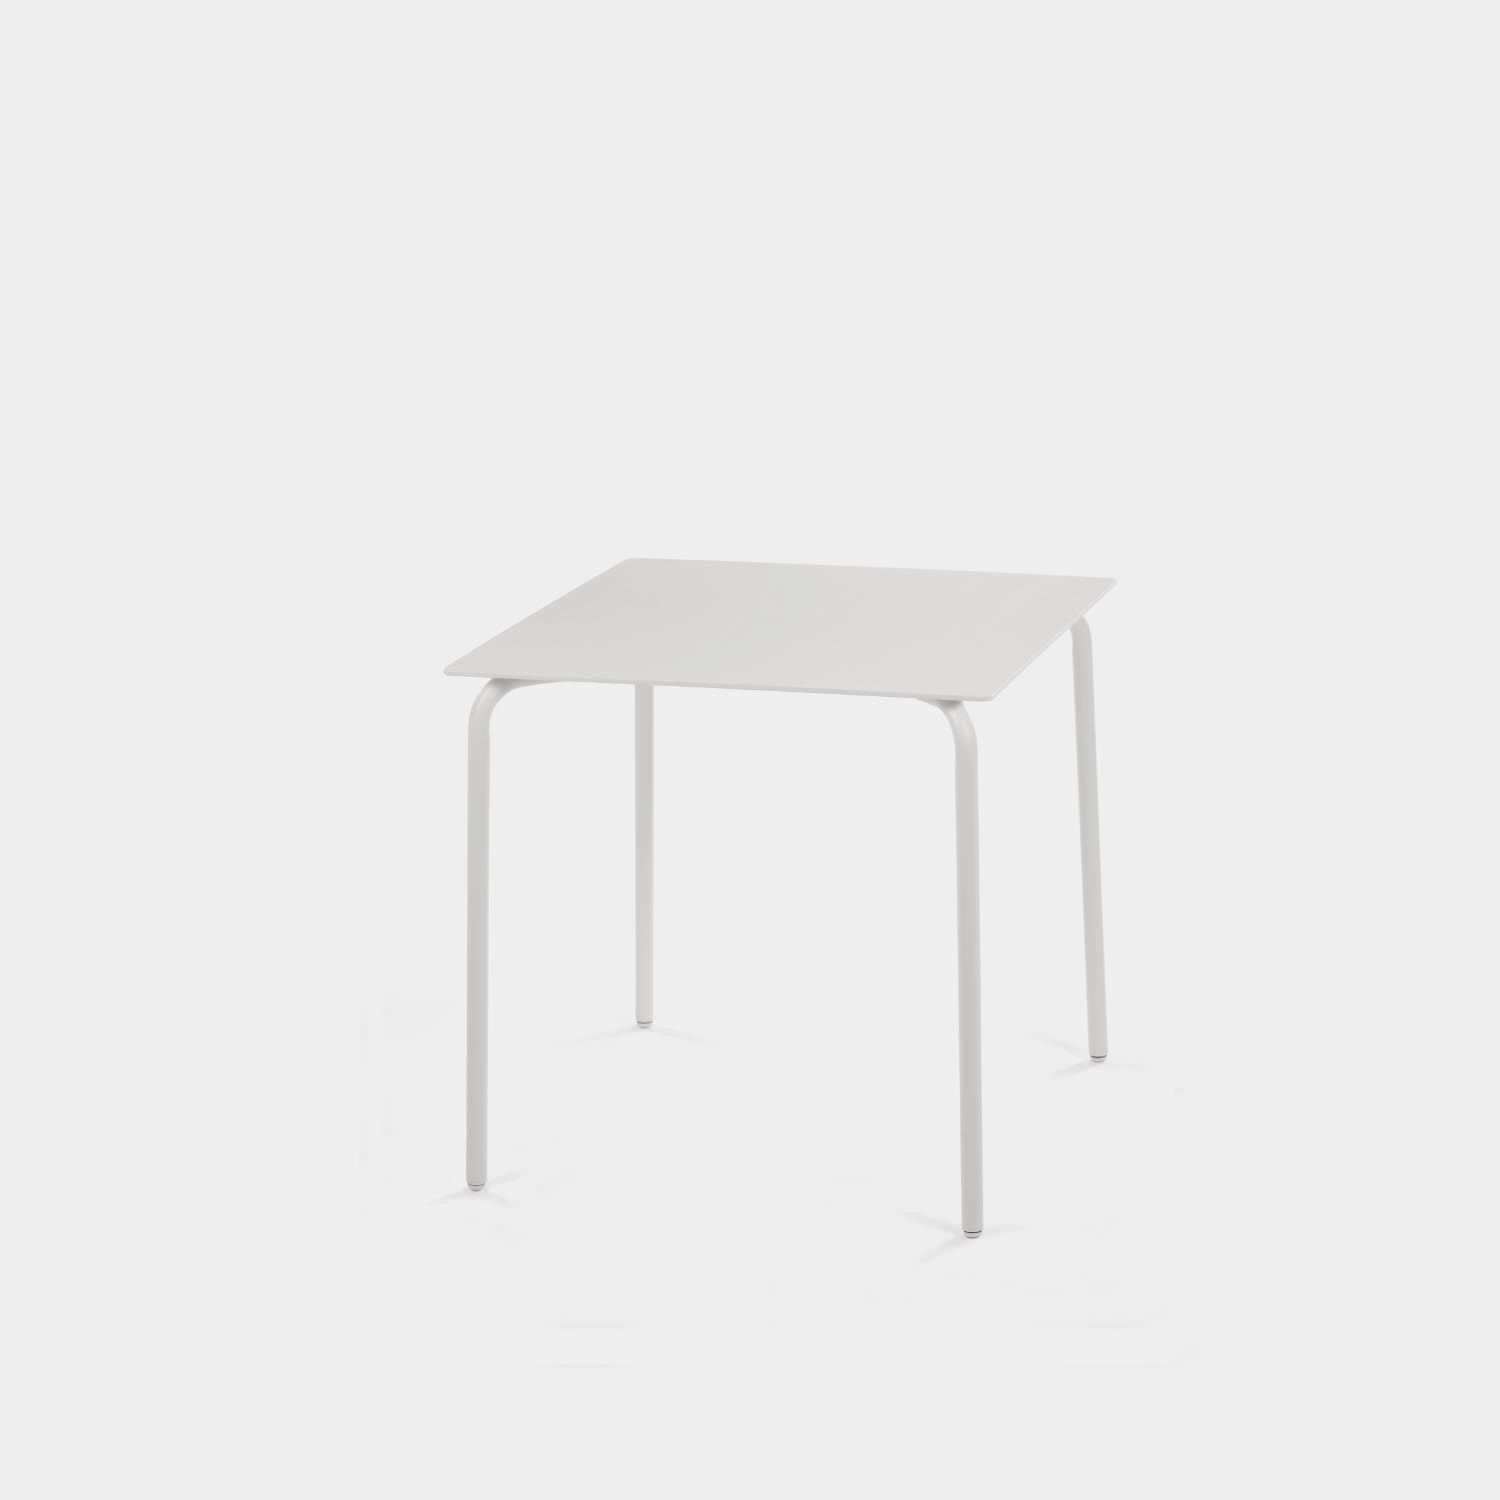 August Dining Table, White